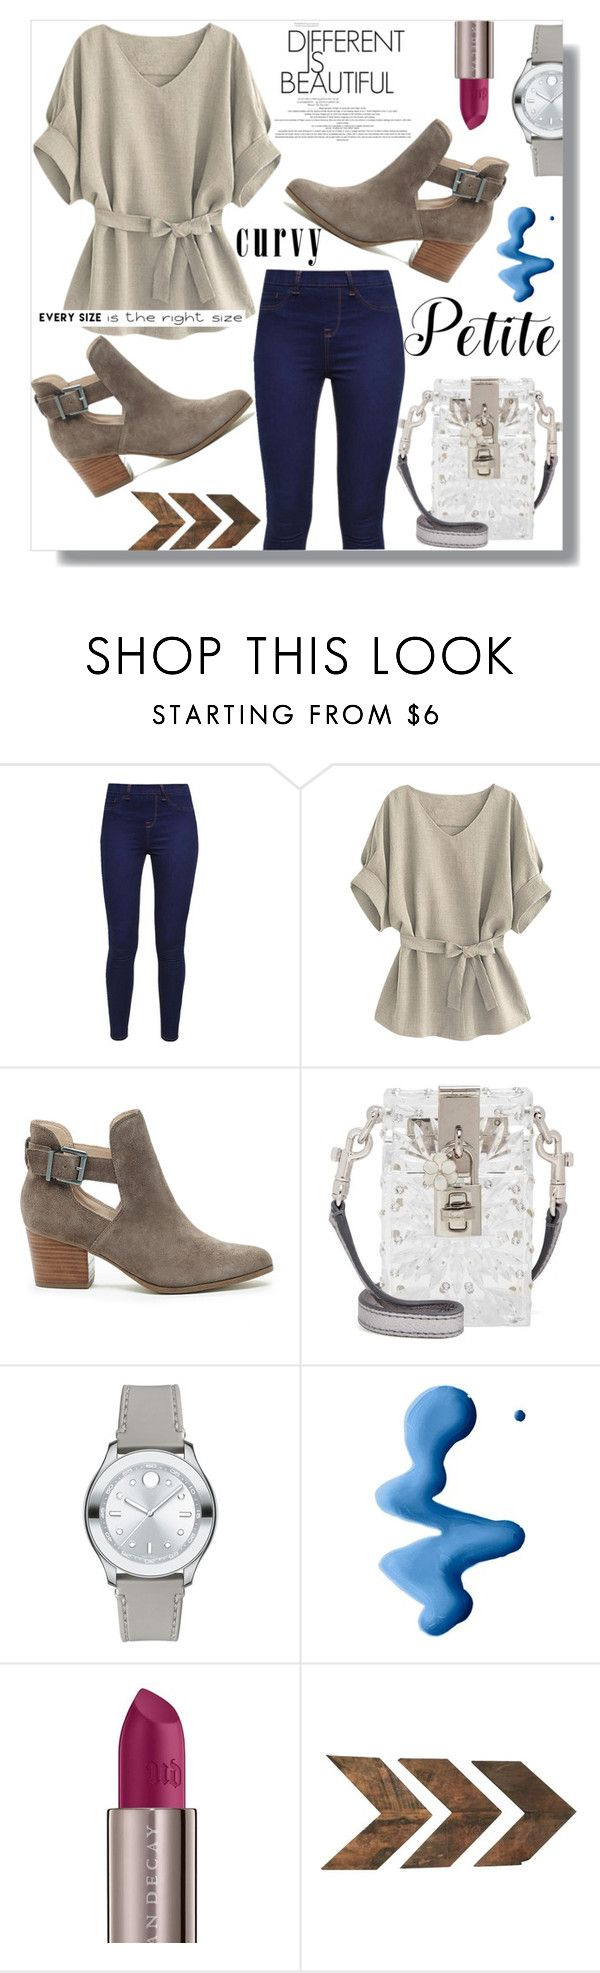 """#PowerLook"" by letiperez-reall ❤ liked on Polyvore featuring Sole Society, Dolce&Gabbana, Movado, Topshop, Urban Decay, WALL, Petite, curvy, polyvorecontest and polyvorefashion"